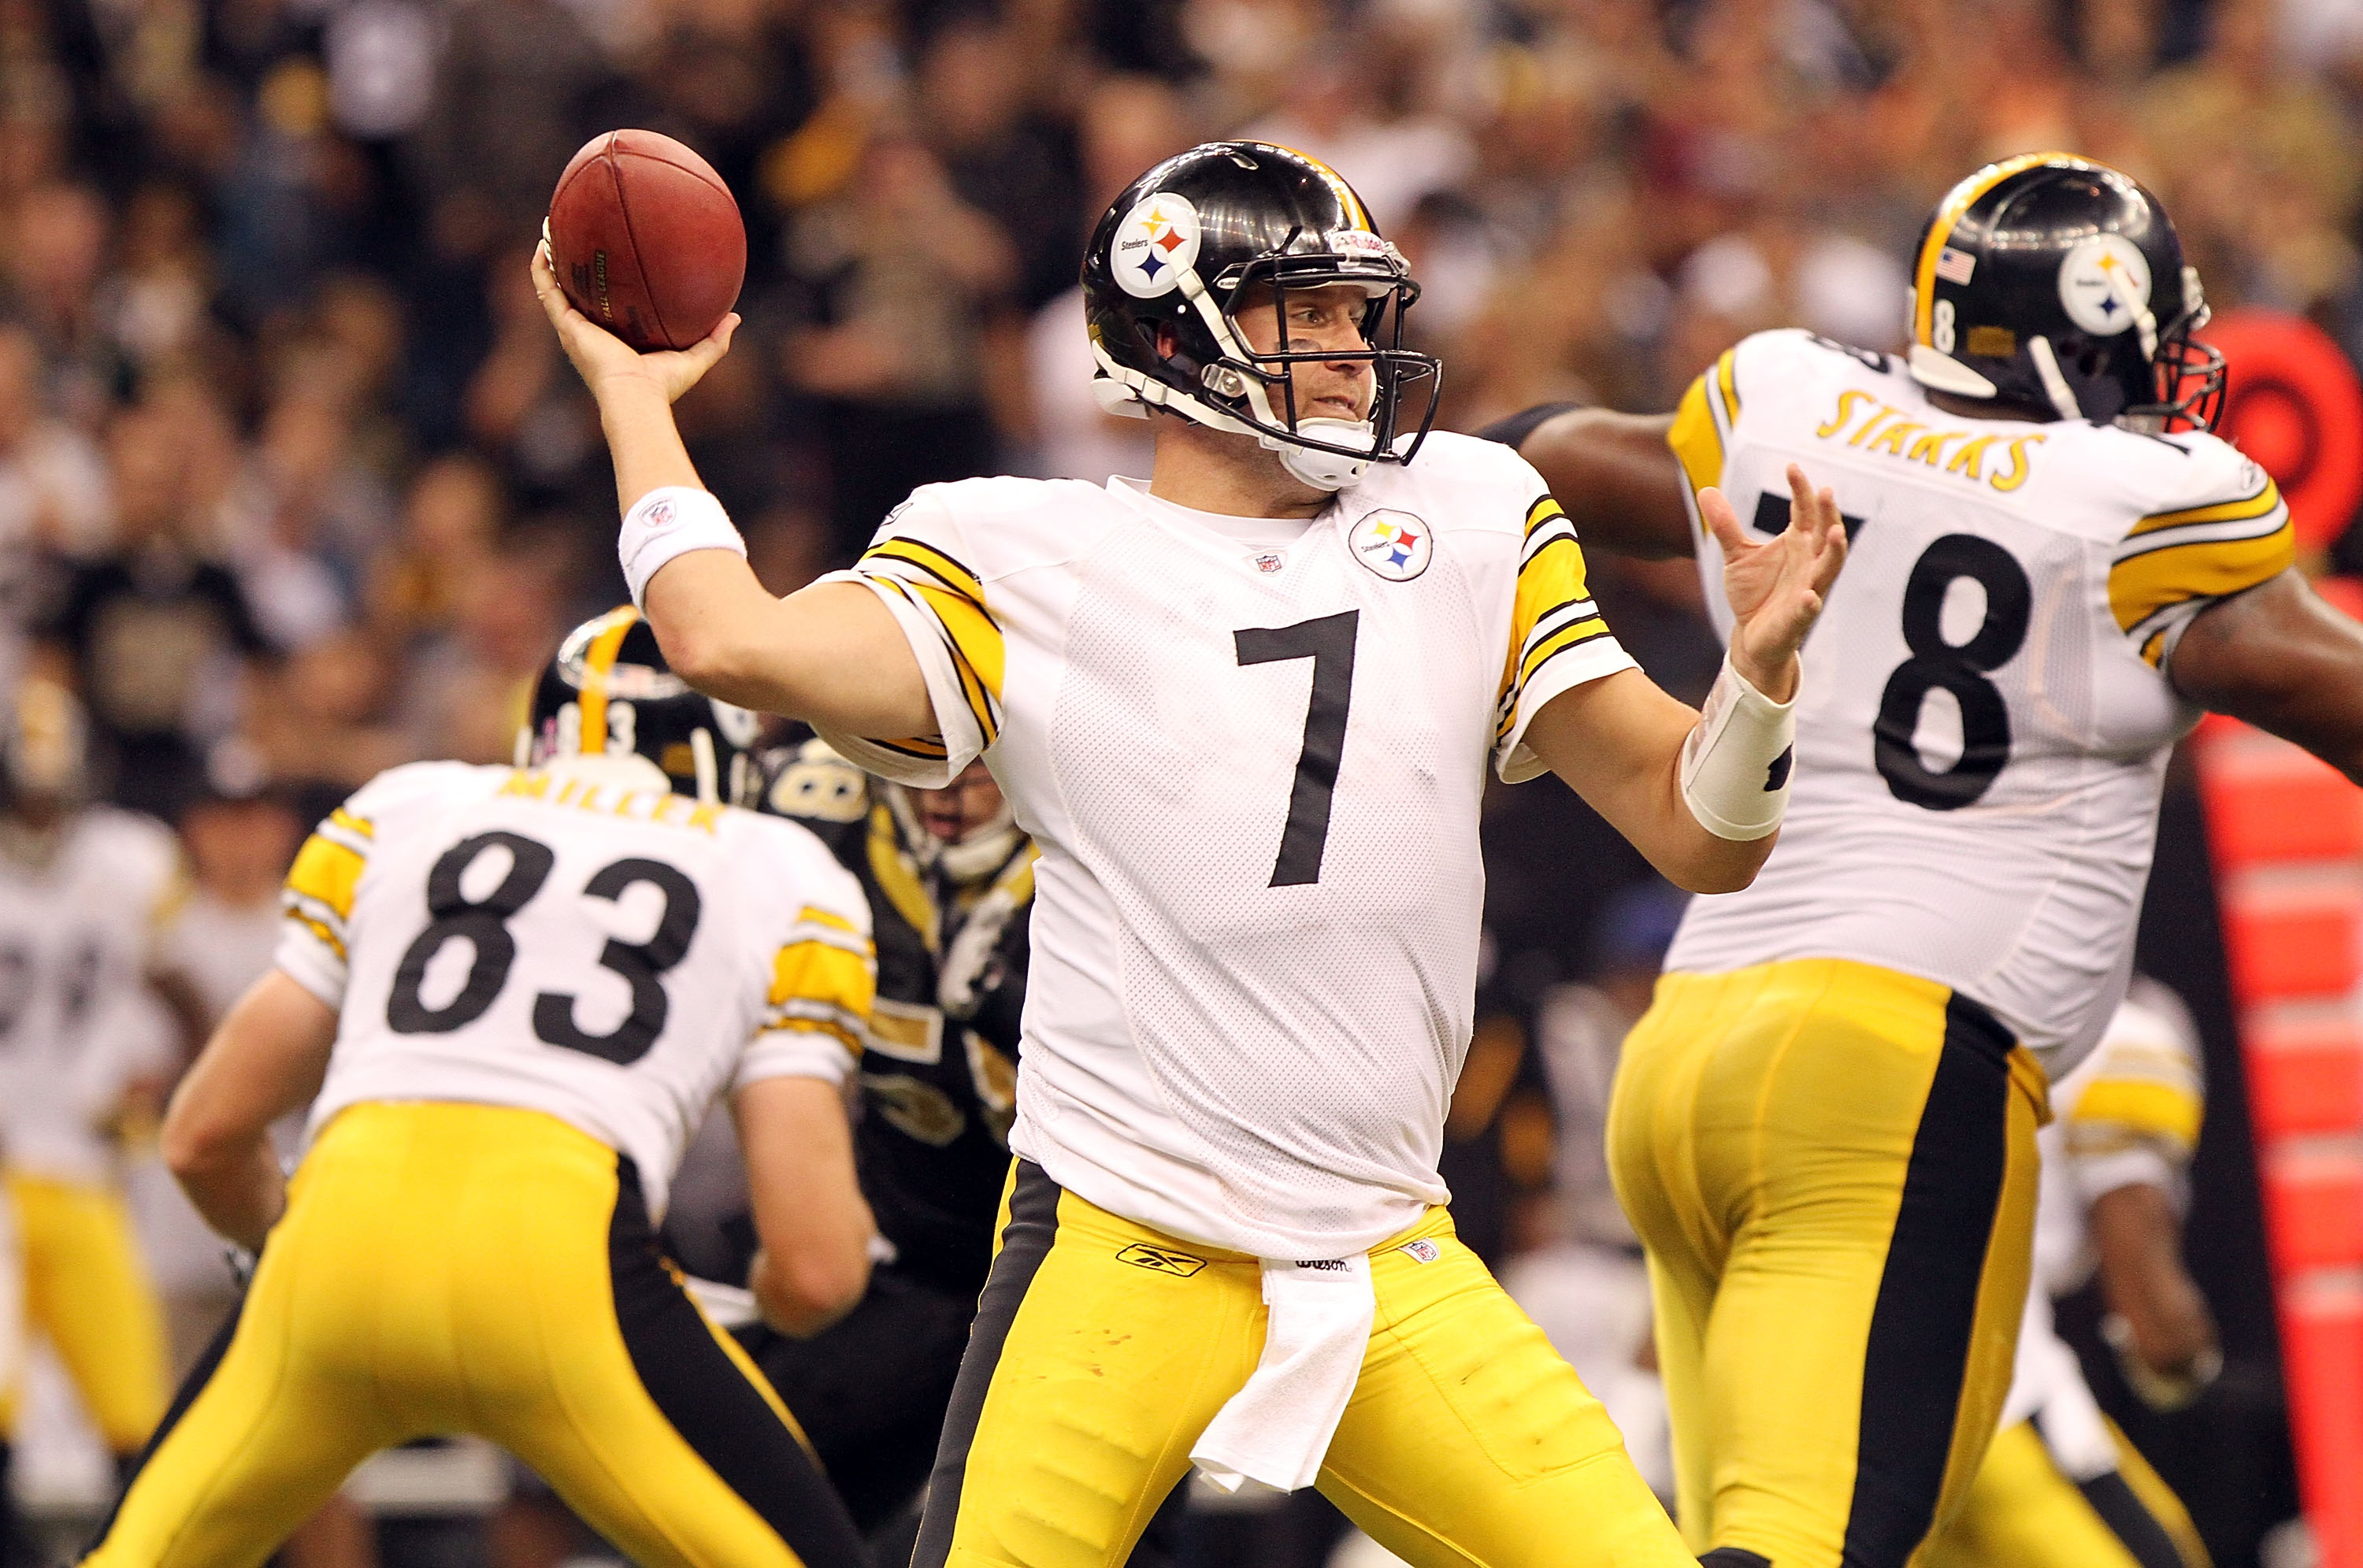 NEW ORLEANS, LA - OCTOBER 31: Ben Roethlisberger #7 of the Pittsburgh Steelers throws the ball against the New Orleans Saints at the Louisiana Superdome on October 31, 2010 in New Orleans, Louisiana. (Photo by Matthew Sharpe/Getty Images)